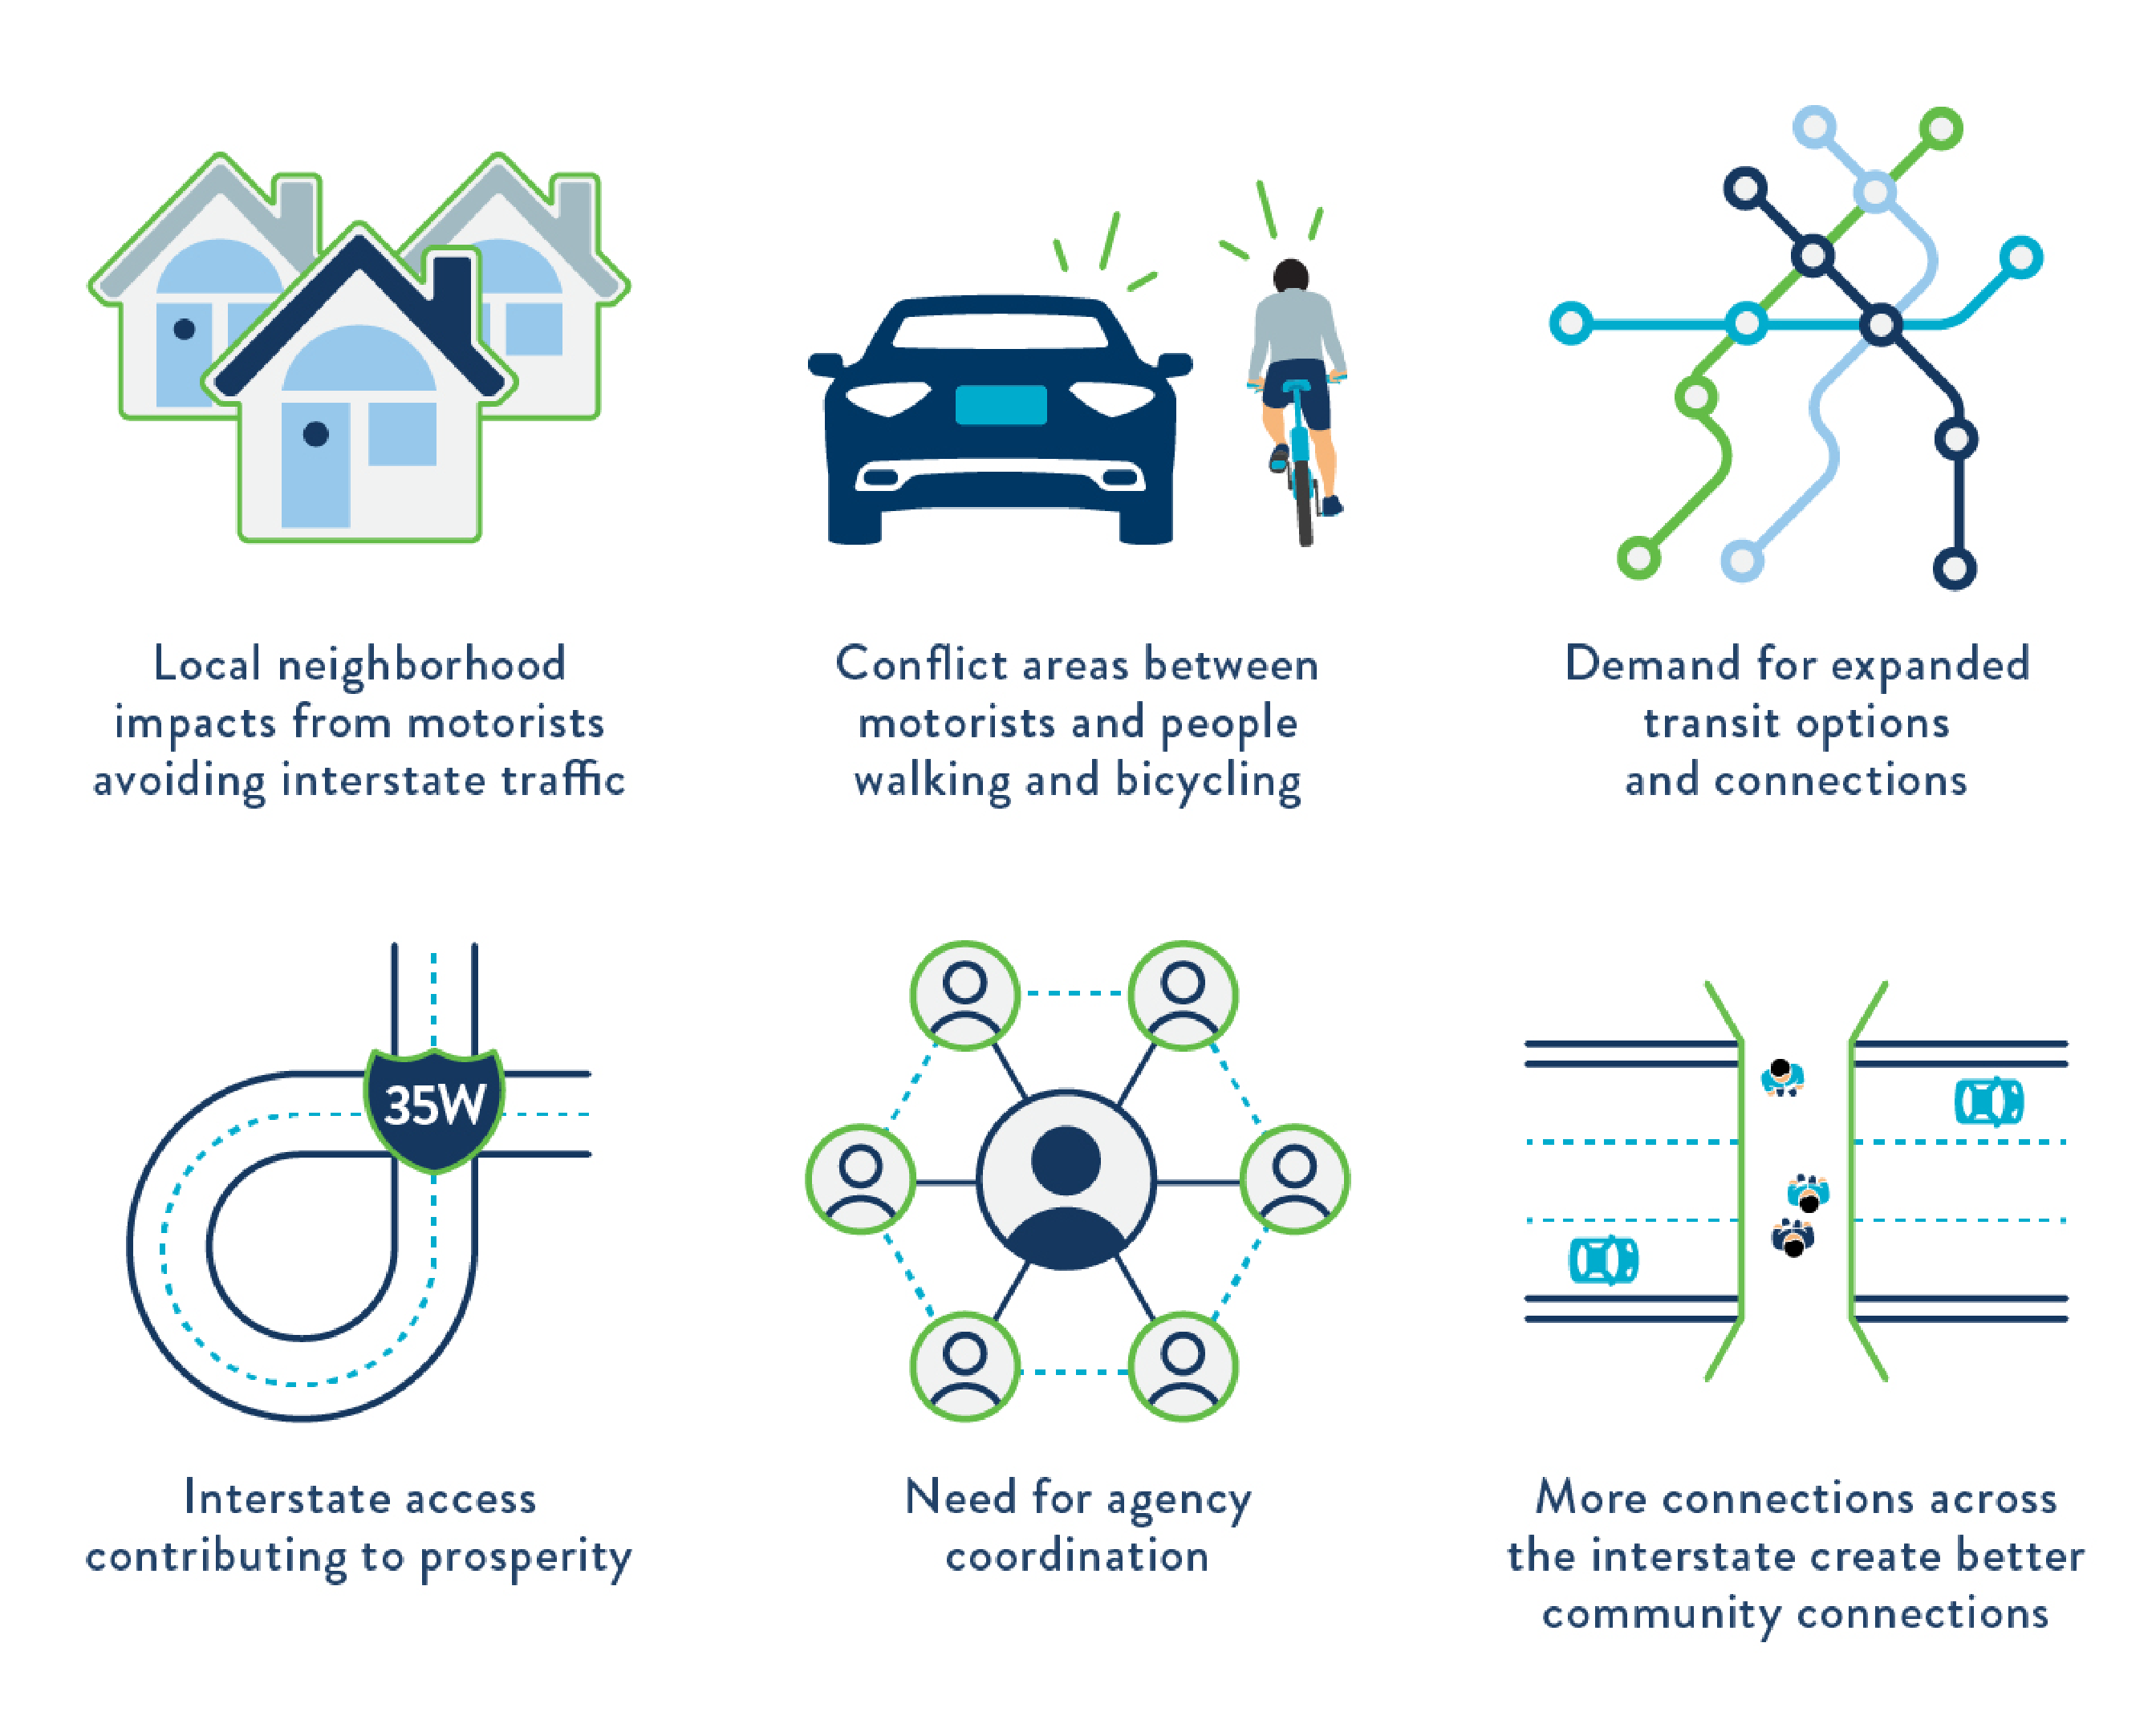 Local neighborhood impacts from motorists avoiding interstate traffic; conflict areas between motorists and people walking and bicycling; demand for expanded transit options and connections; interstate access contributing to prosperity; need for agency coordination; and more connections across the interstate create better community connections.